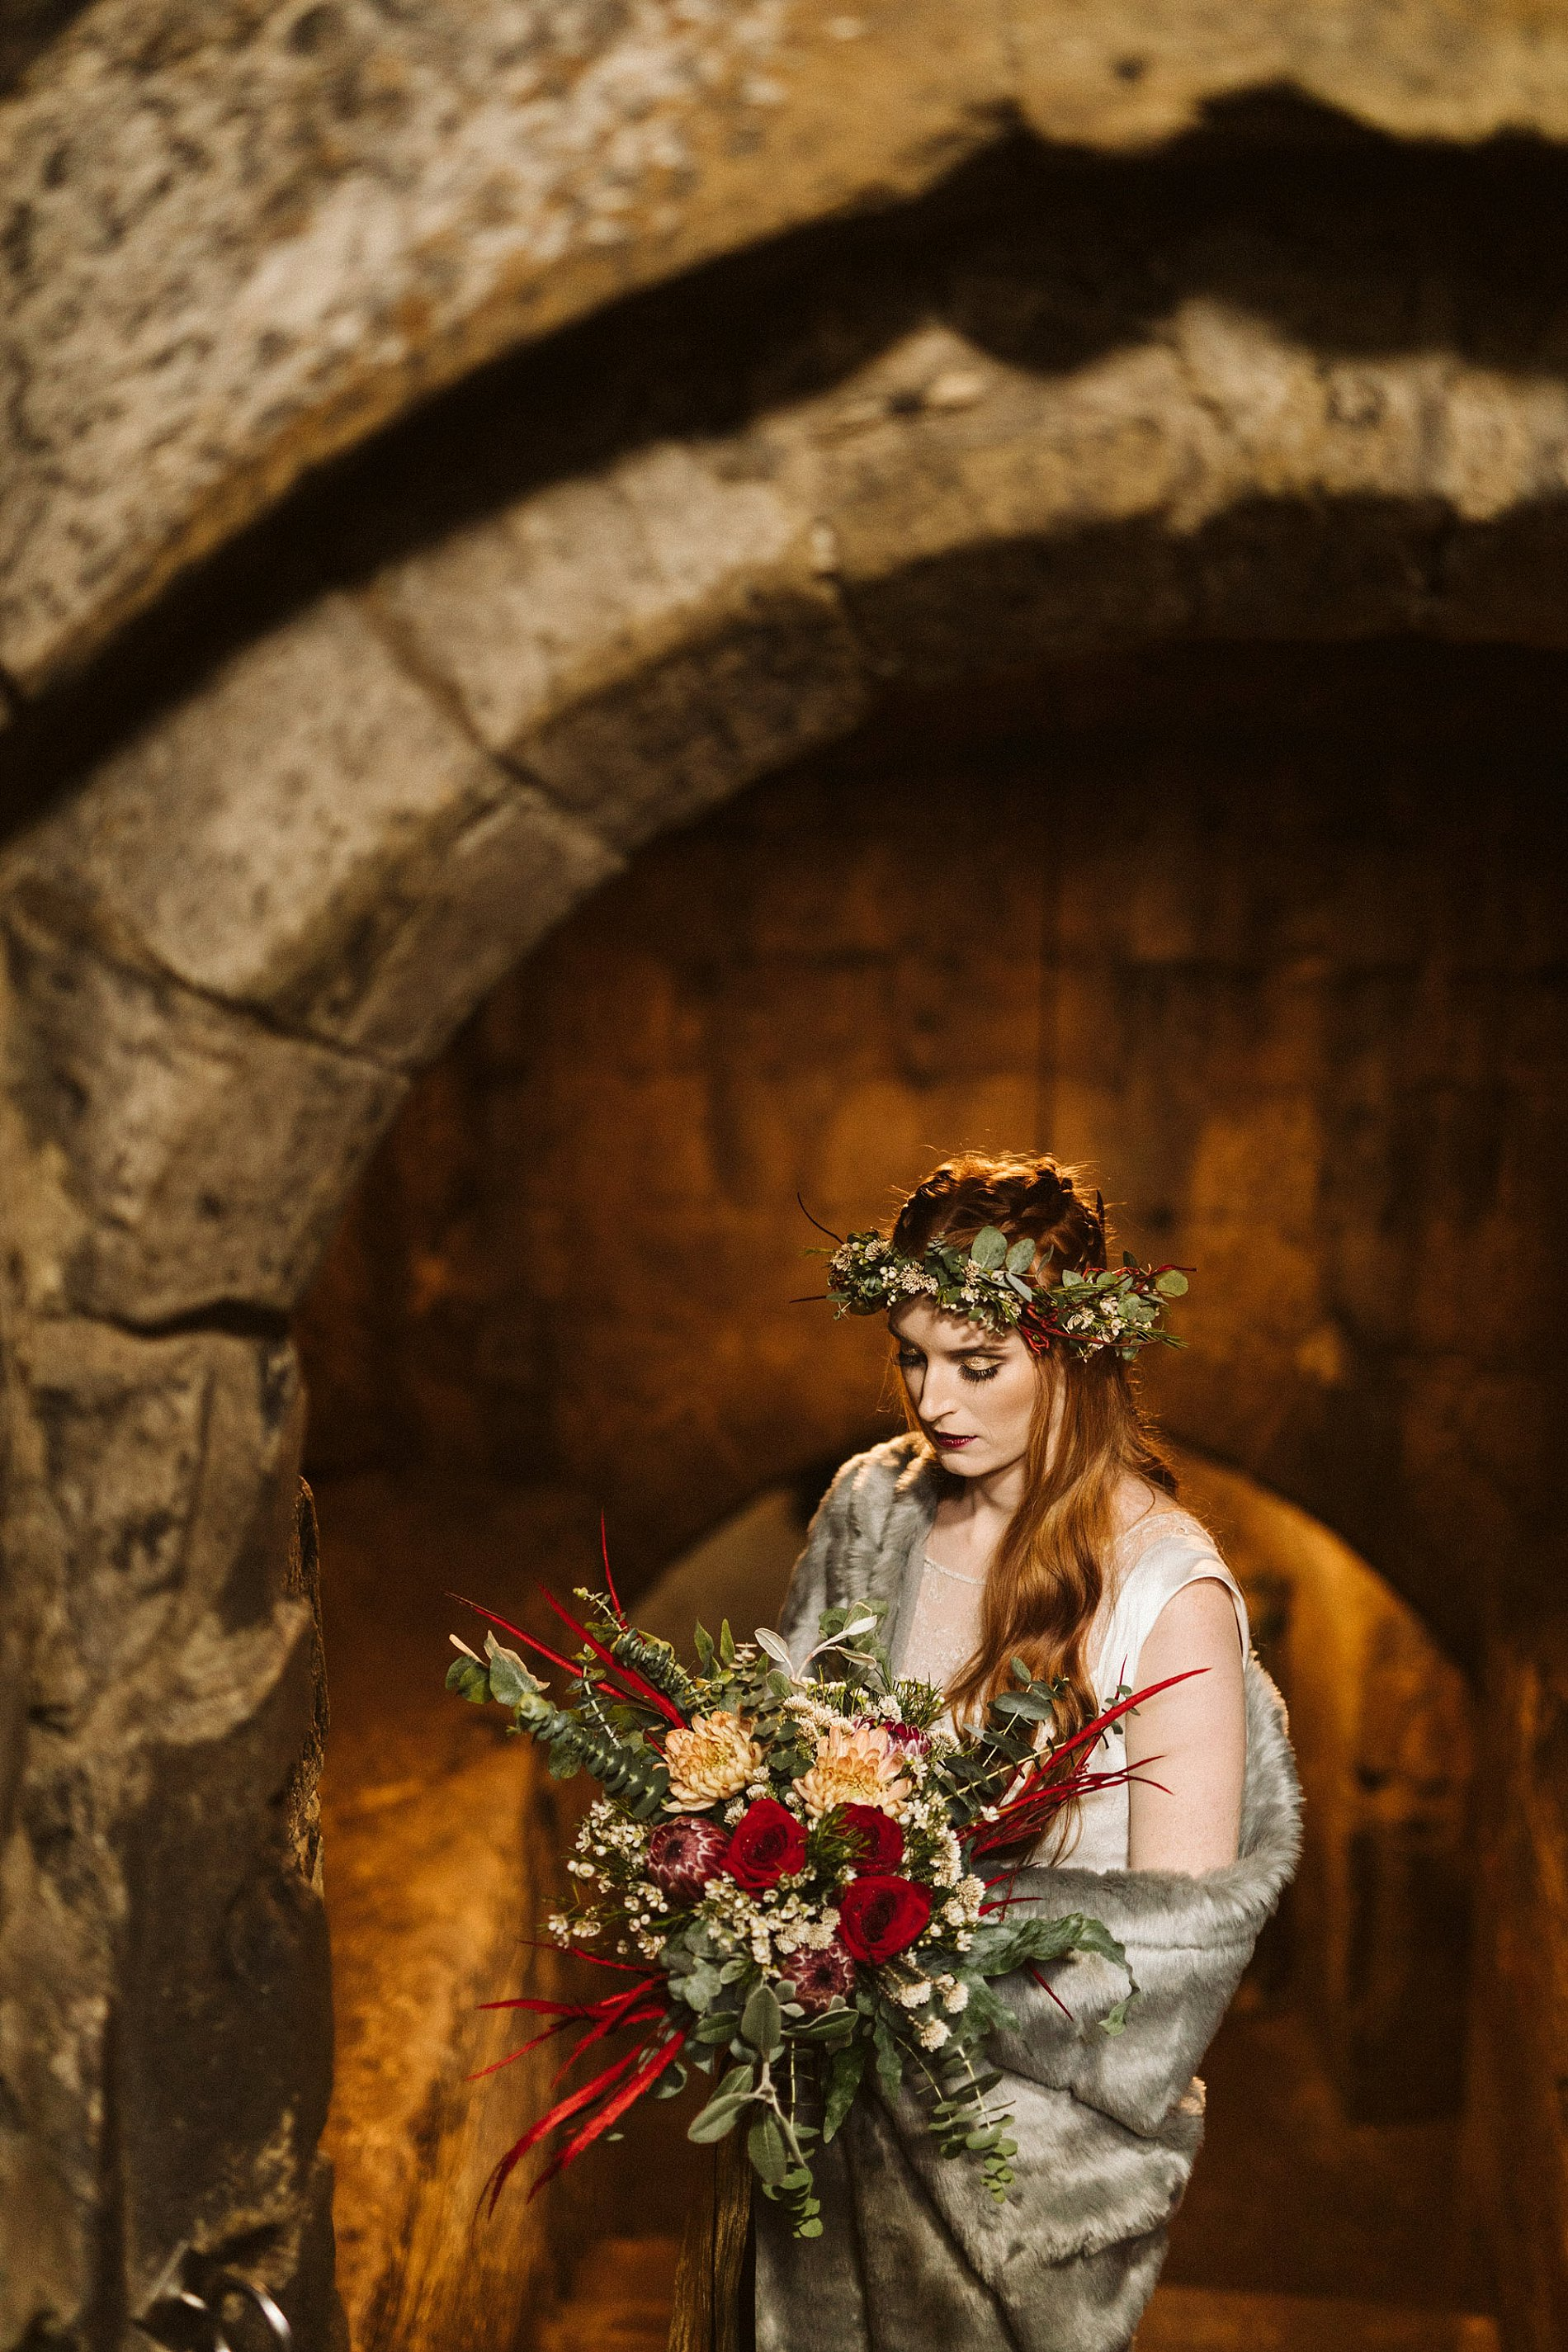 Game of Thrones Creative Bridal Shoot (c) Freya Raby (34)